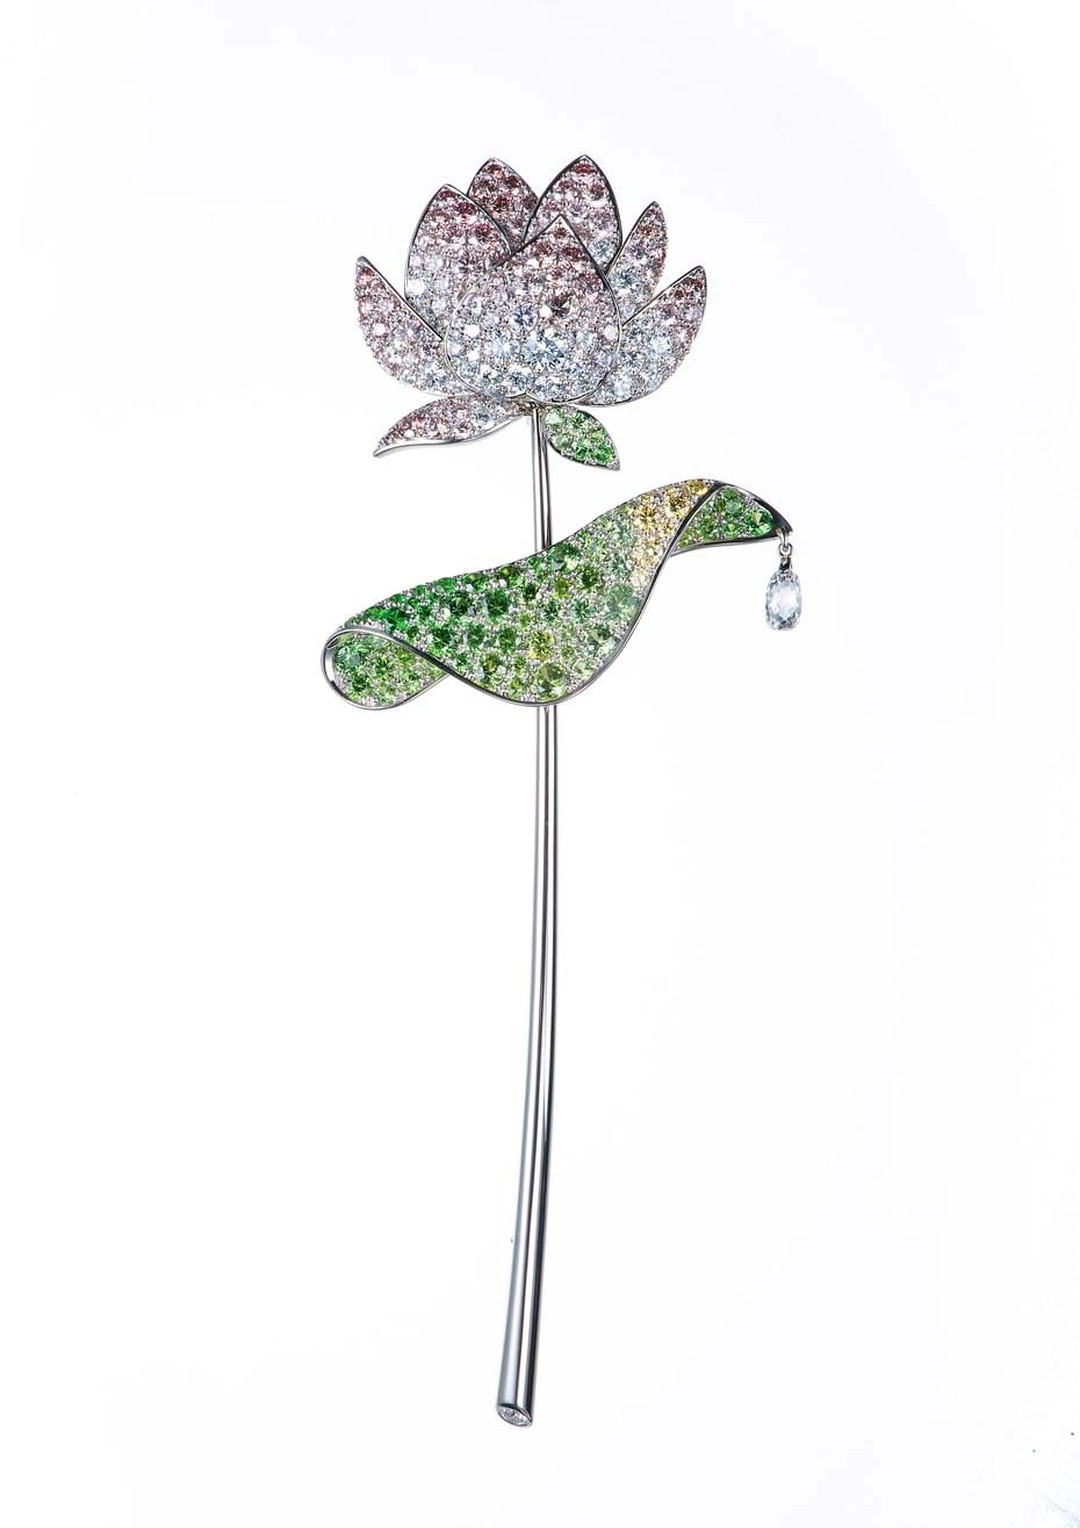 Gimel's platinum Lotus brooch from 2001 featuring a flower head with pavé-set pink and colourless diamond petals leading to a circular-cut demantoid garnet and yellow diamond leaves. © Gimel Trading Co., Ltd.